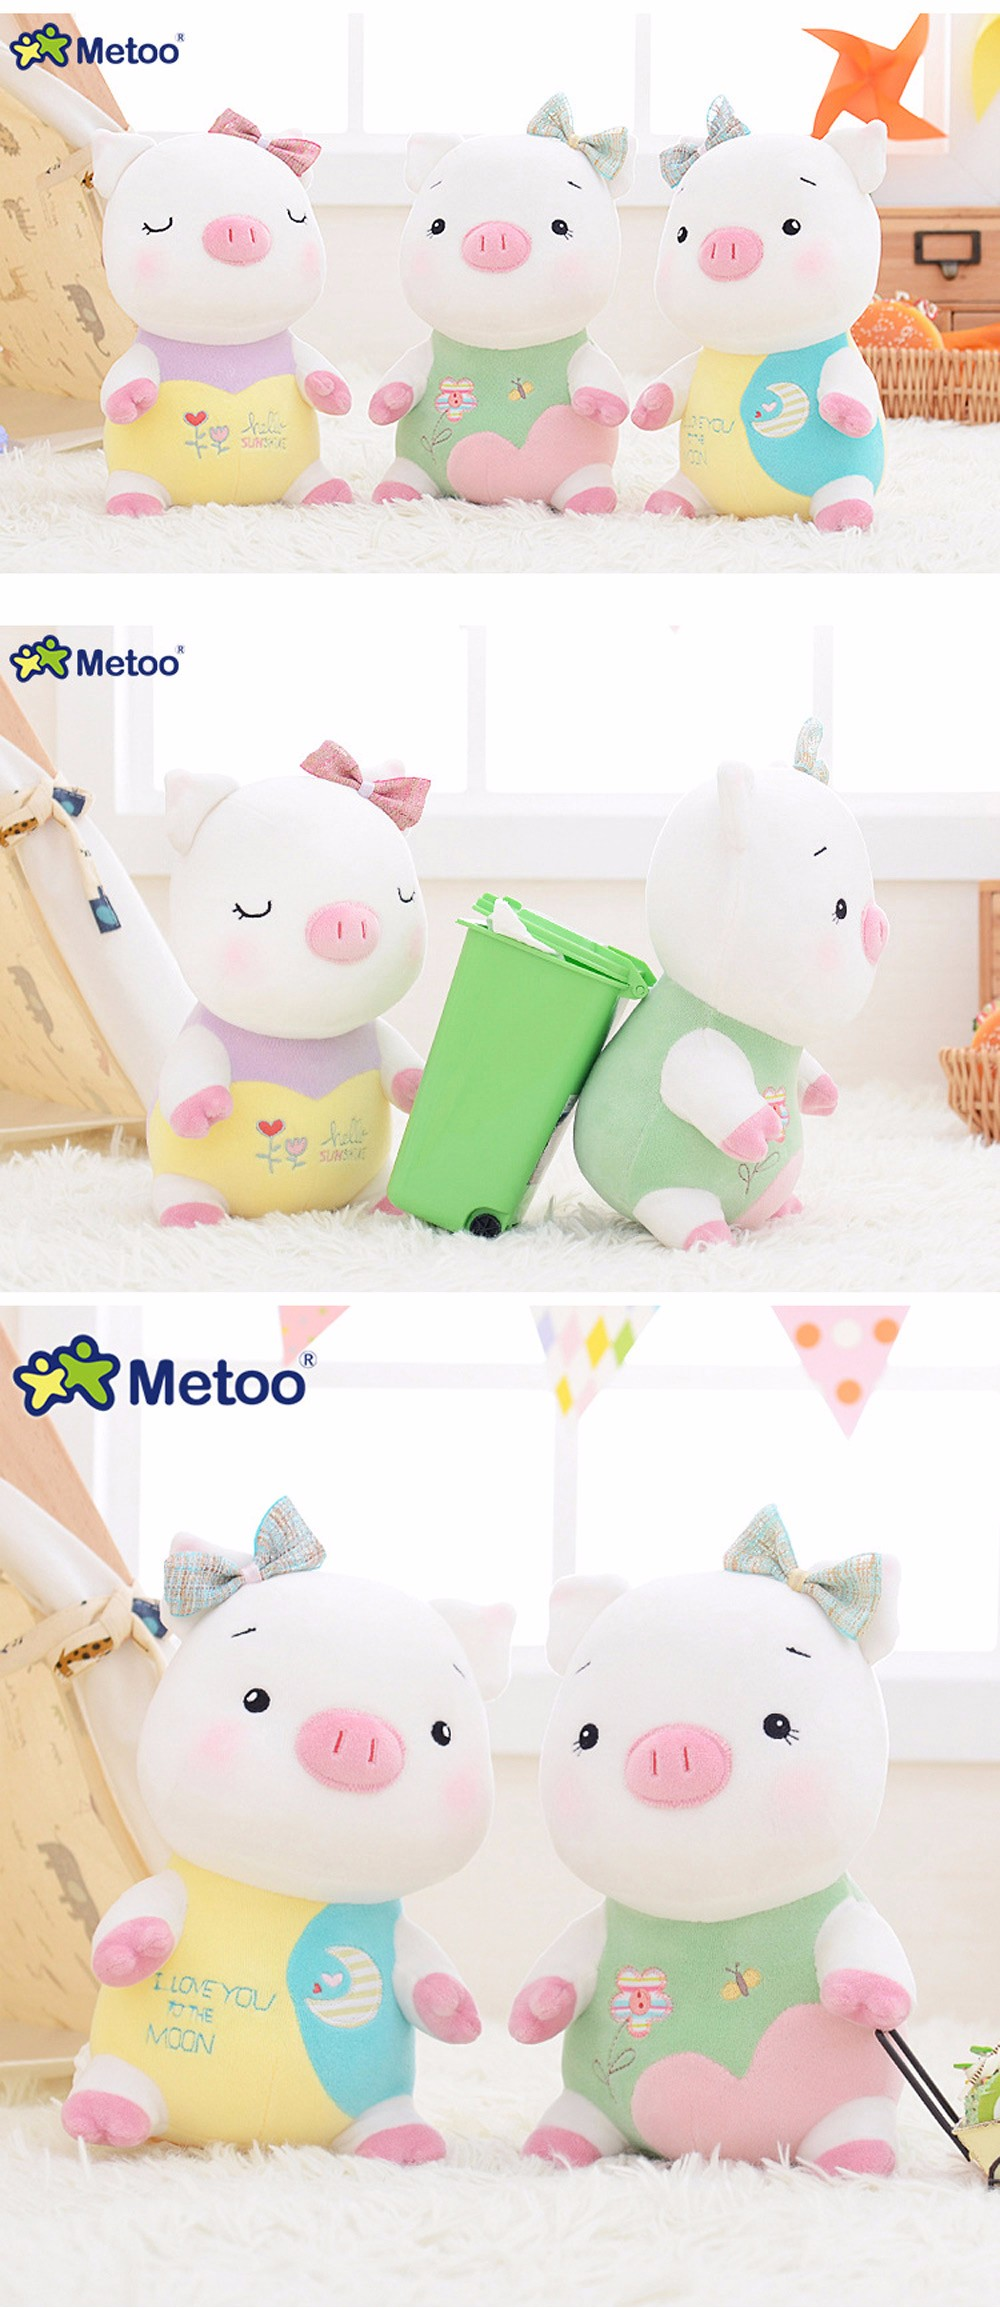 Metoo Little Pig Plush Doll Toy Birthday Christmas Gift